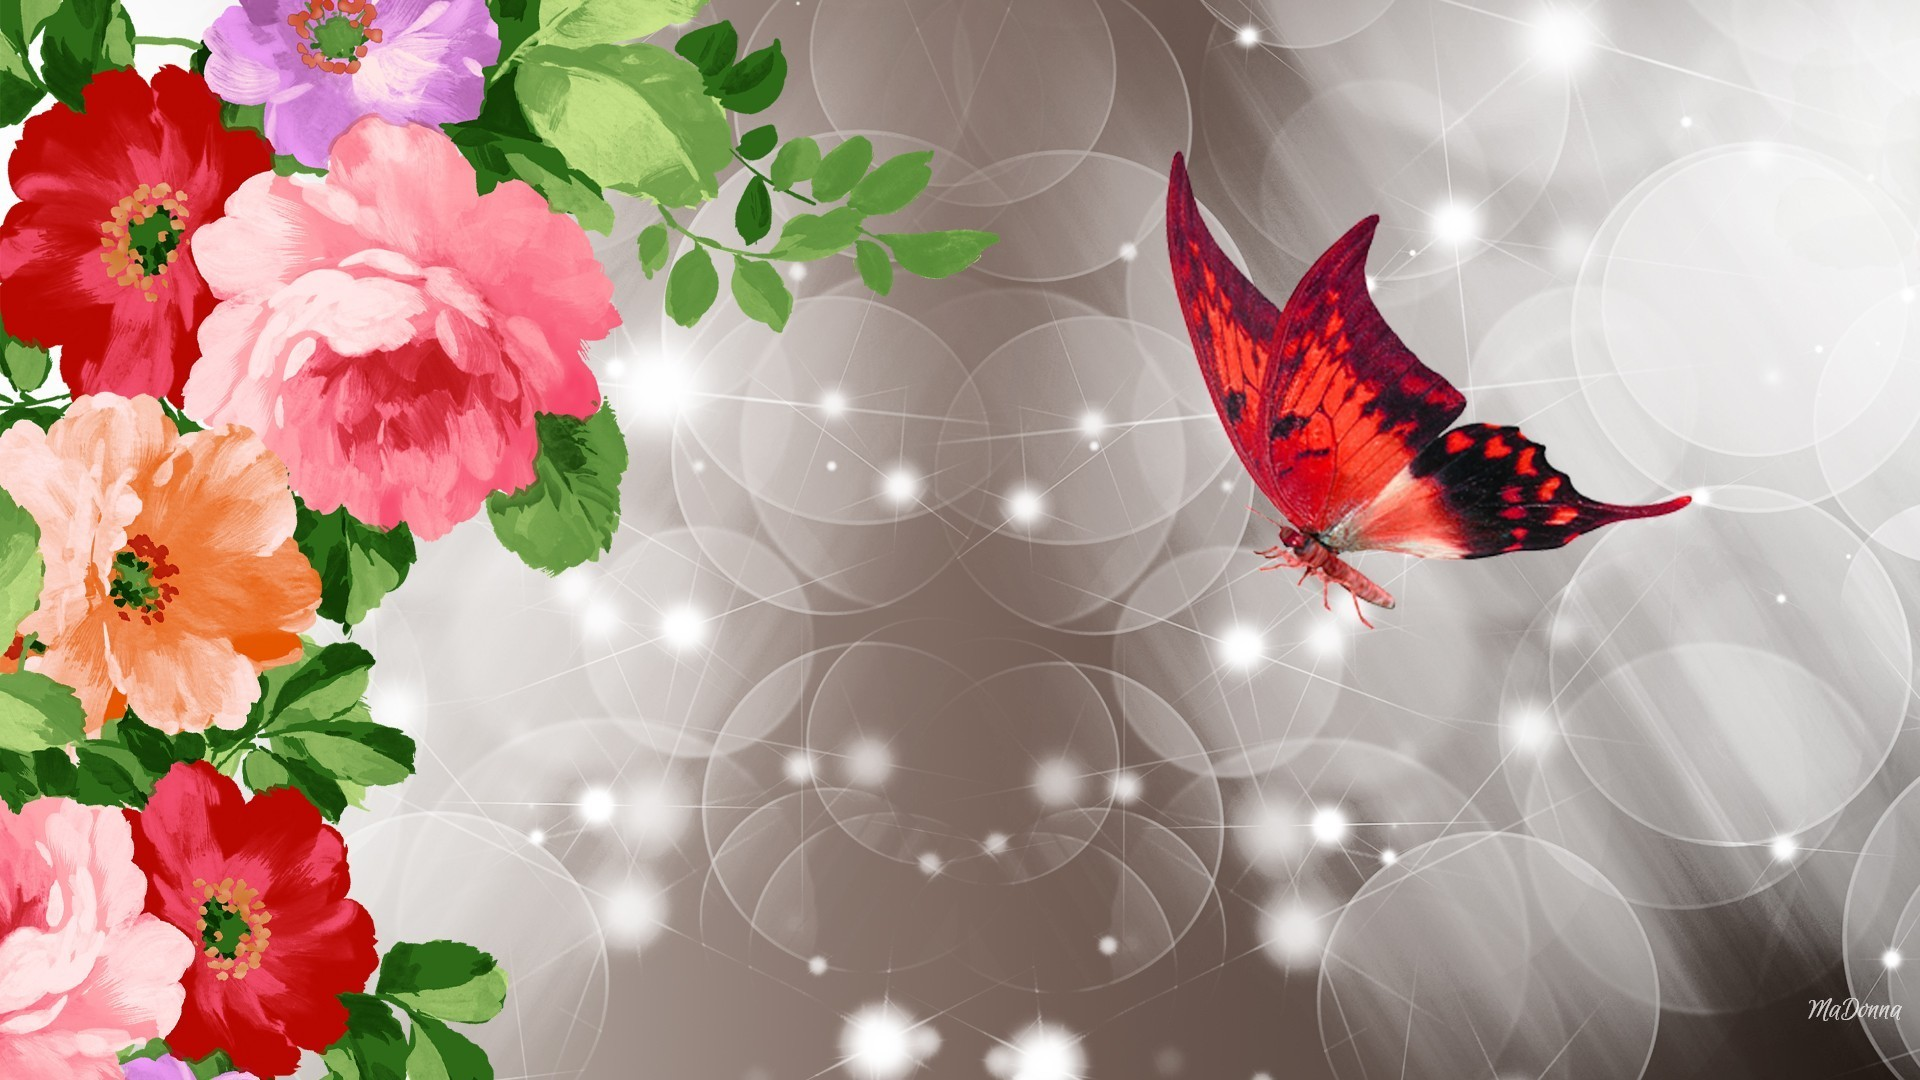 Res: 1920x1080, Wild Roses Red Butterfly Flowers Blooms Shine Summer Stars Spring Blossoms  Sparkle Best Wallpapers